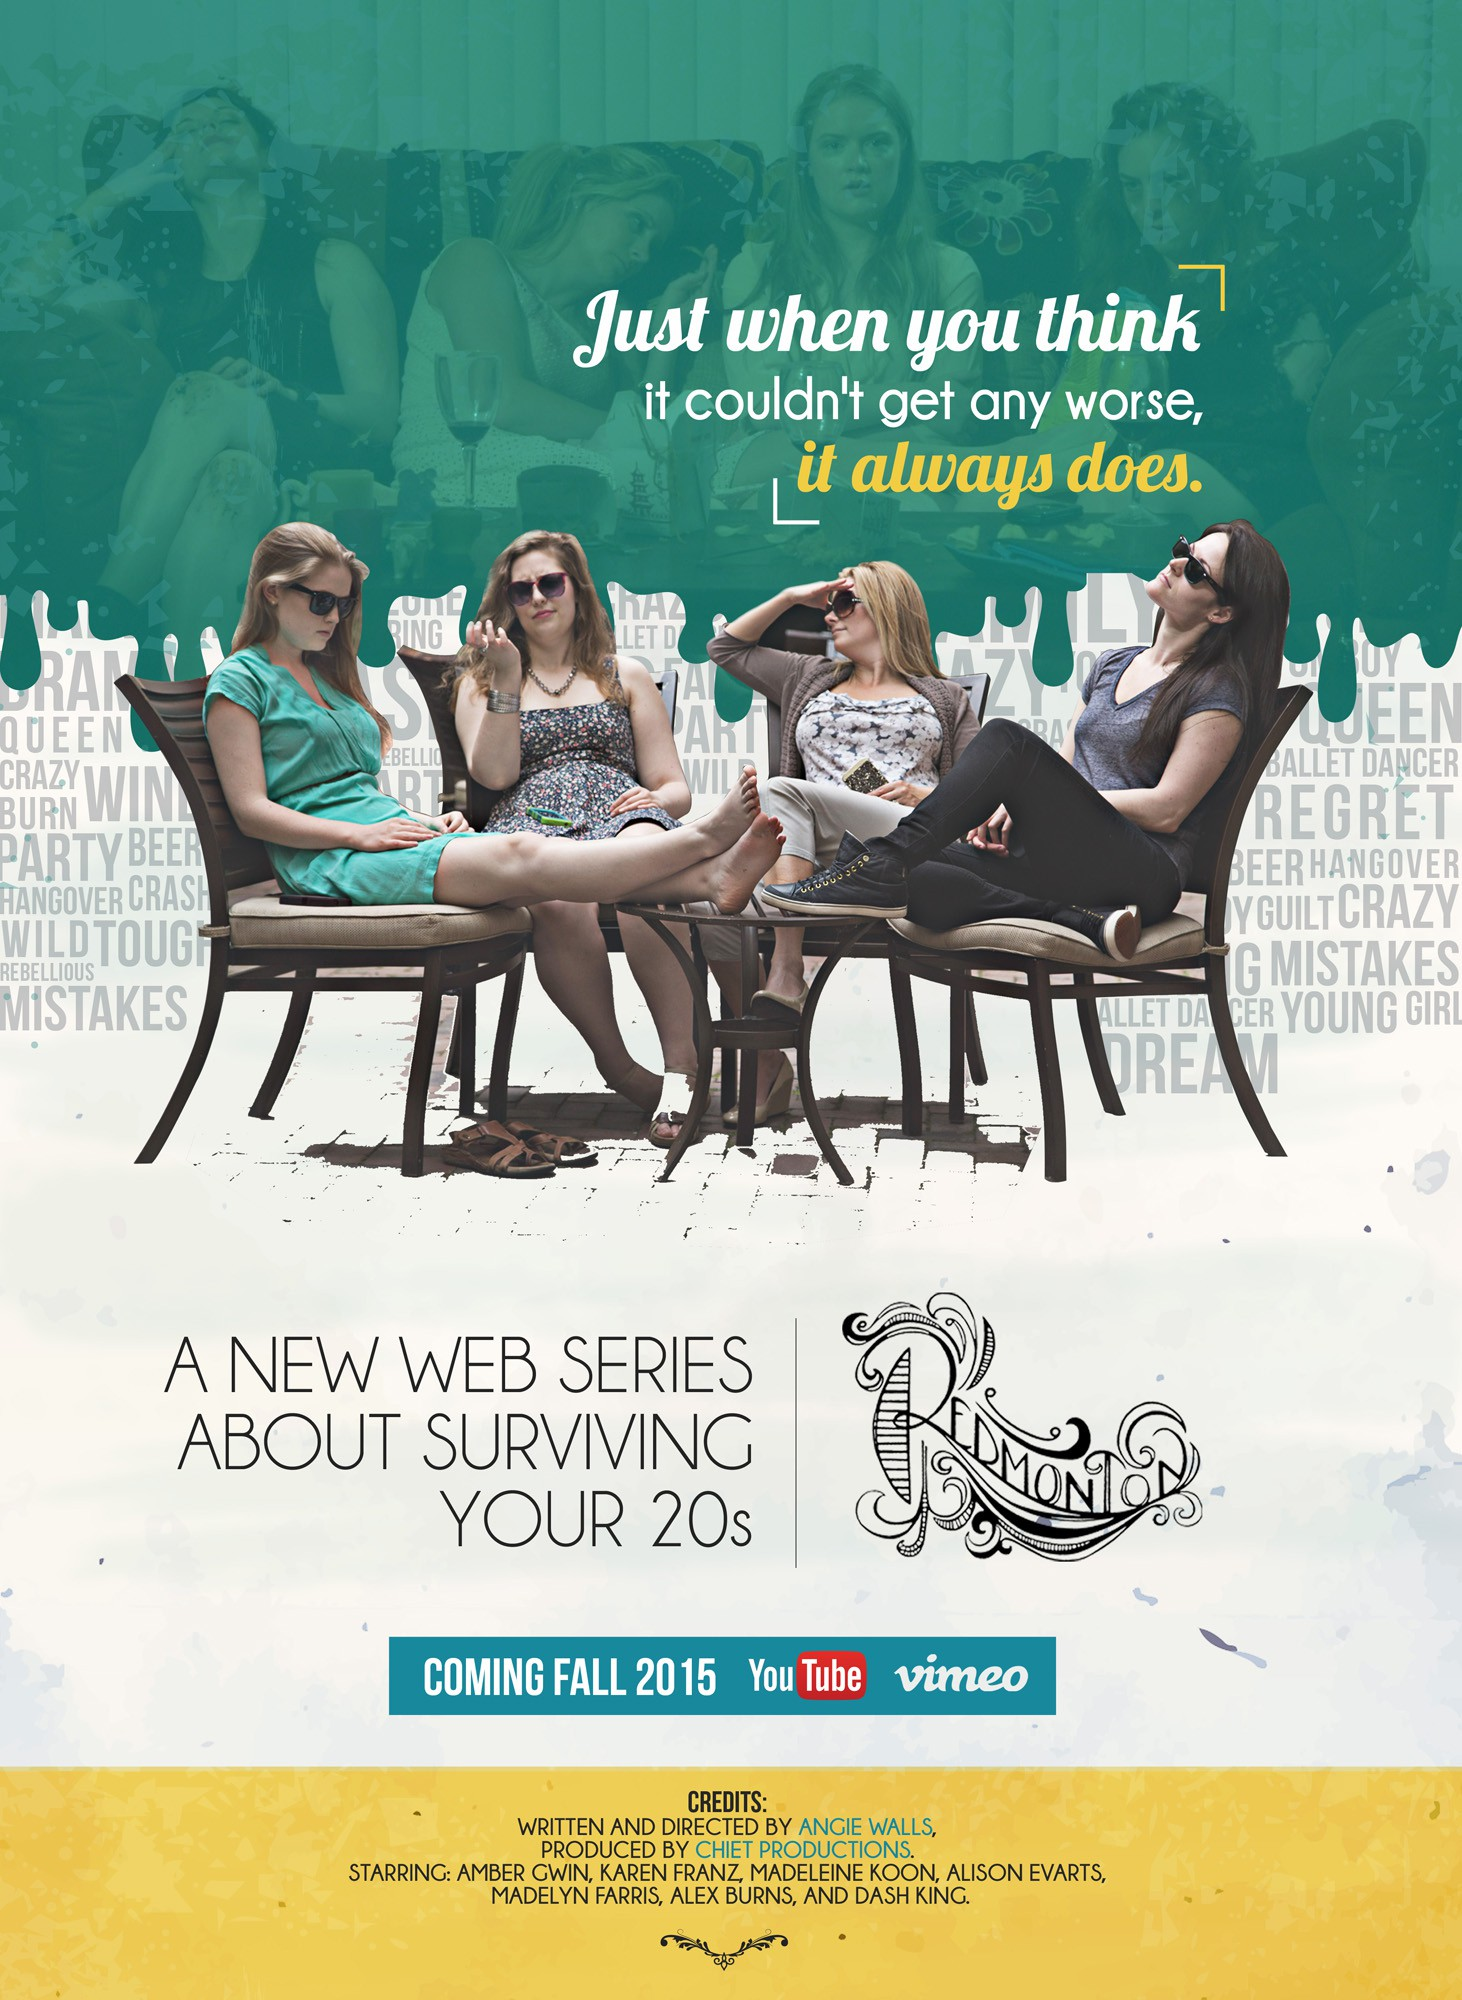 Design the official poster announcing a new web series coming this fall